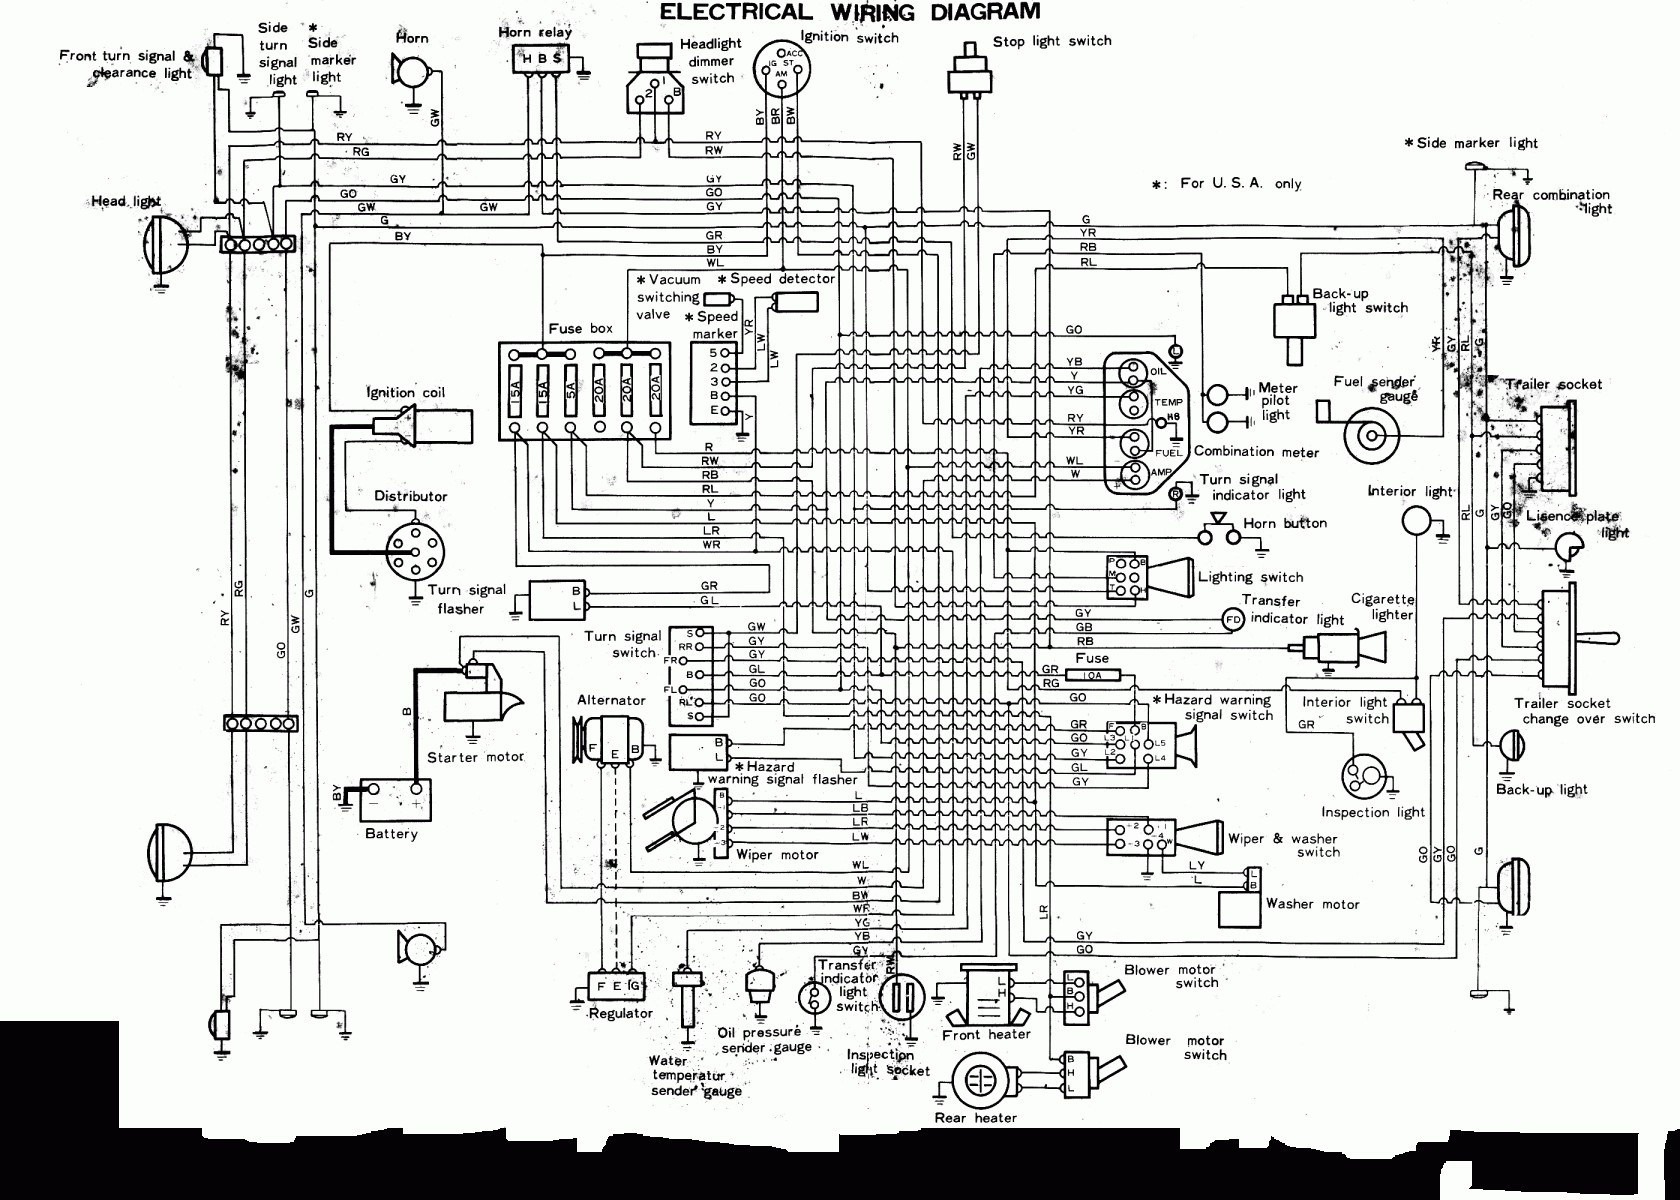 wiring toyota 86120 yy diagram 94 Toyota Camry Stereo Wiring Diagram